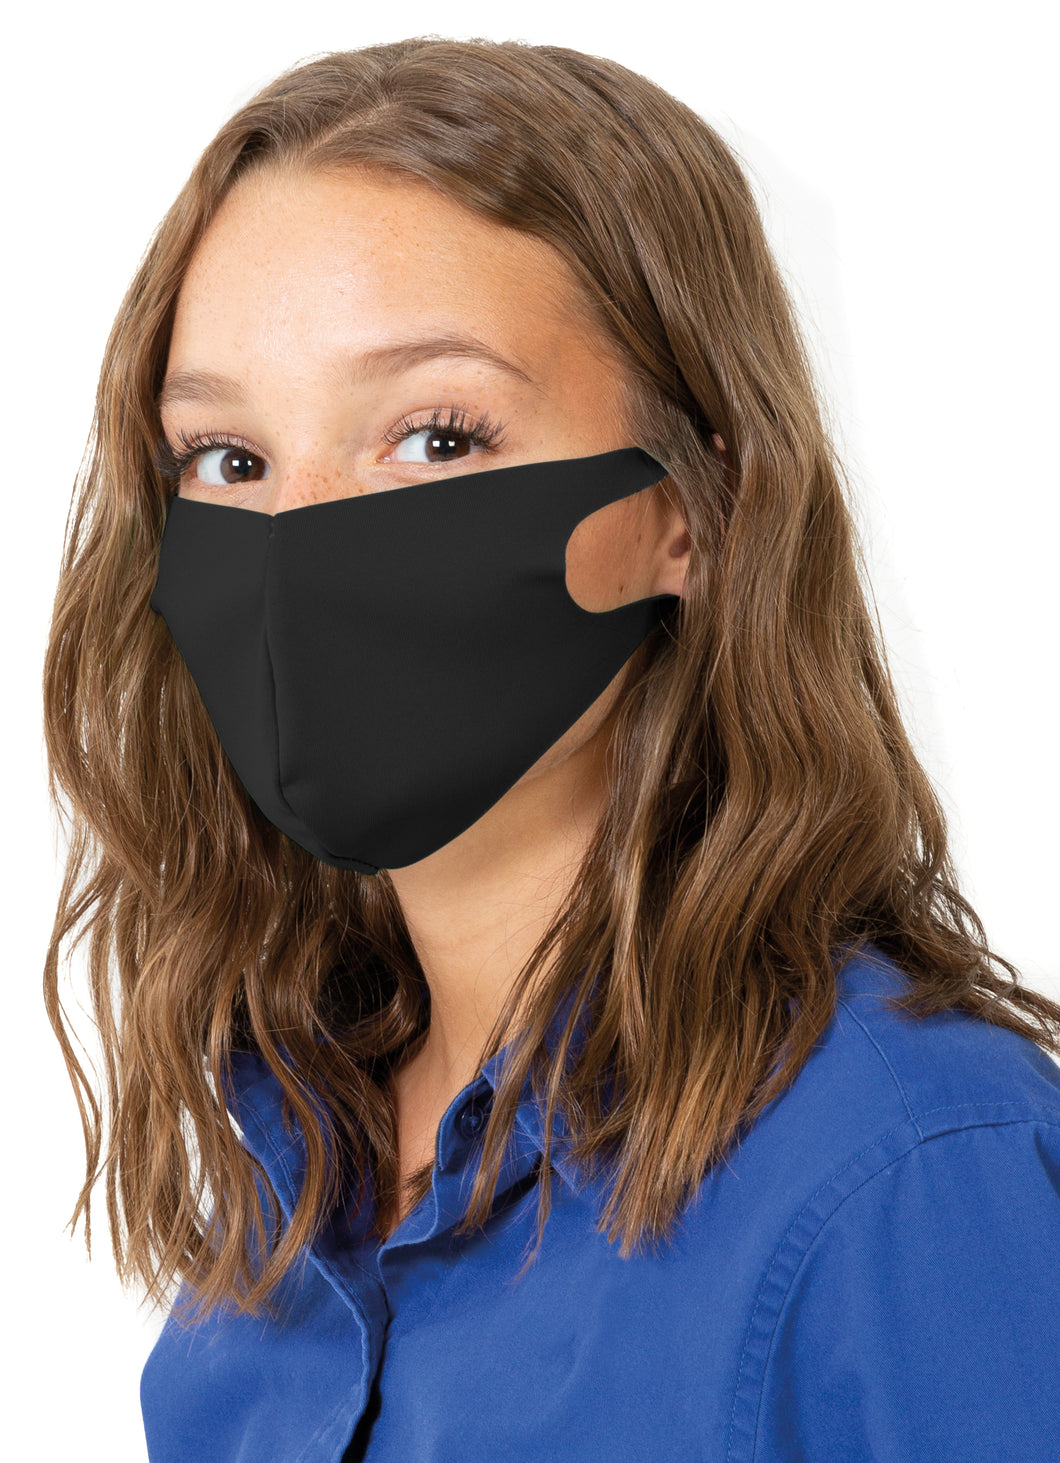 Reusable Face Mask with Single Ply Poly Cotton - Made in the USA, Light Weight Stretchable Ear Loop with Fluid Resistance, Machine Washable (10 Pack - Adult - Black)